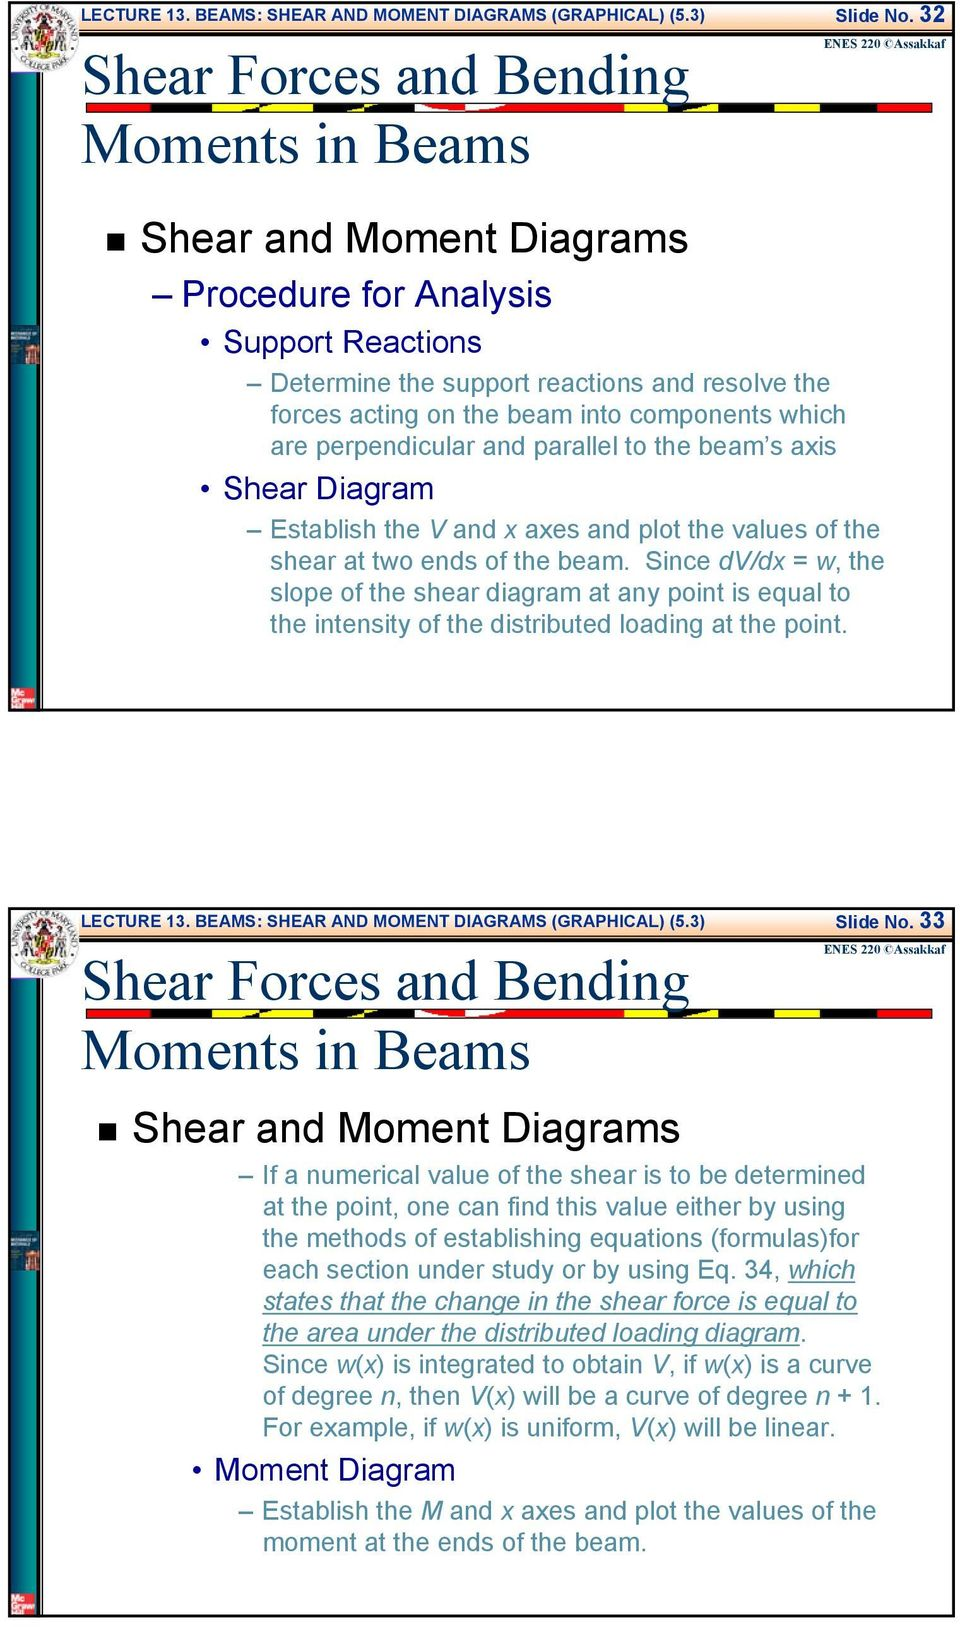 Beams Shear And Moment Diagrams Graphical Pdf Bending Diagram Resulting From The Plastic Analysis Of A Beam S Ais Establish Aes Plot Values